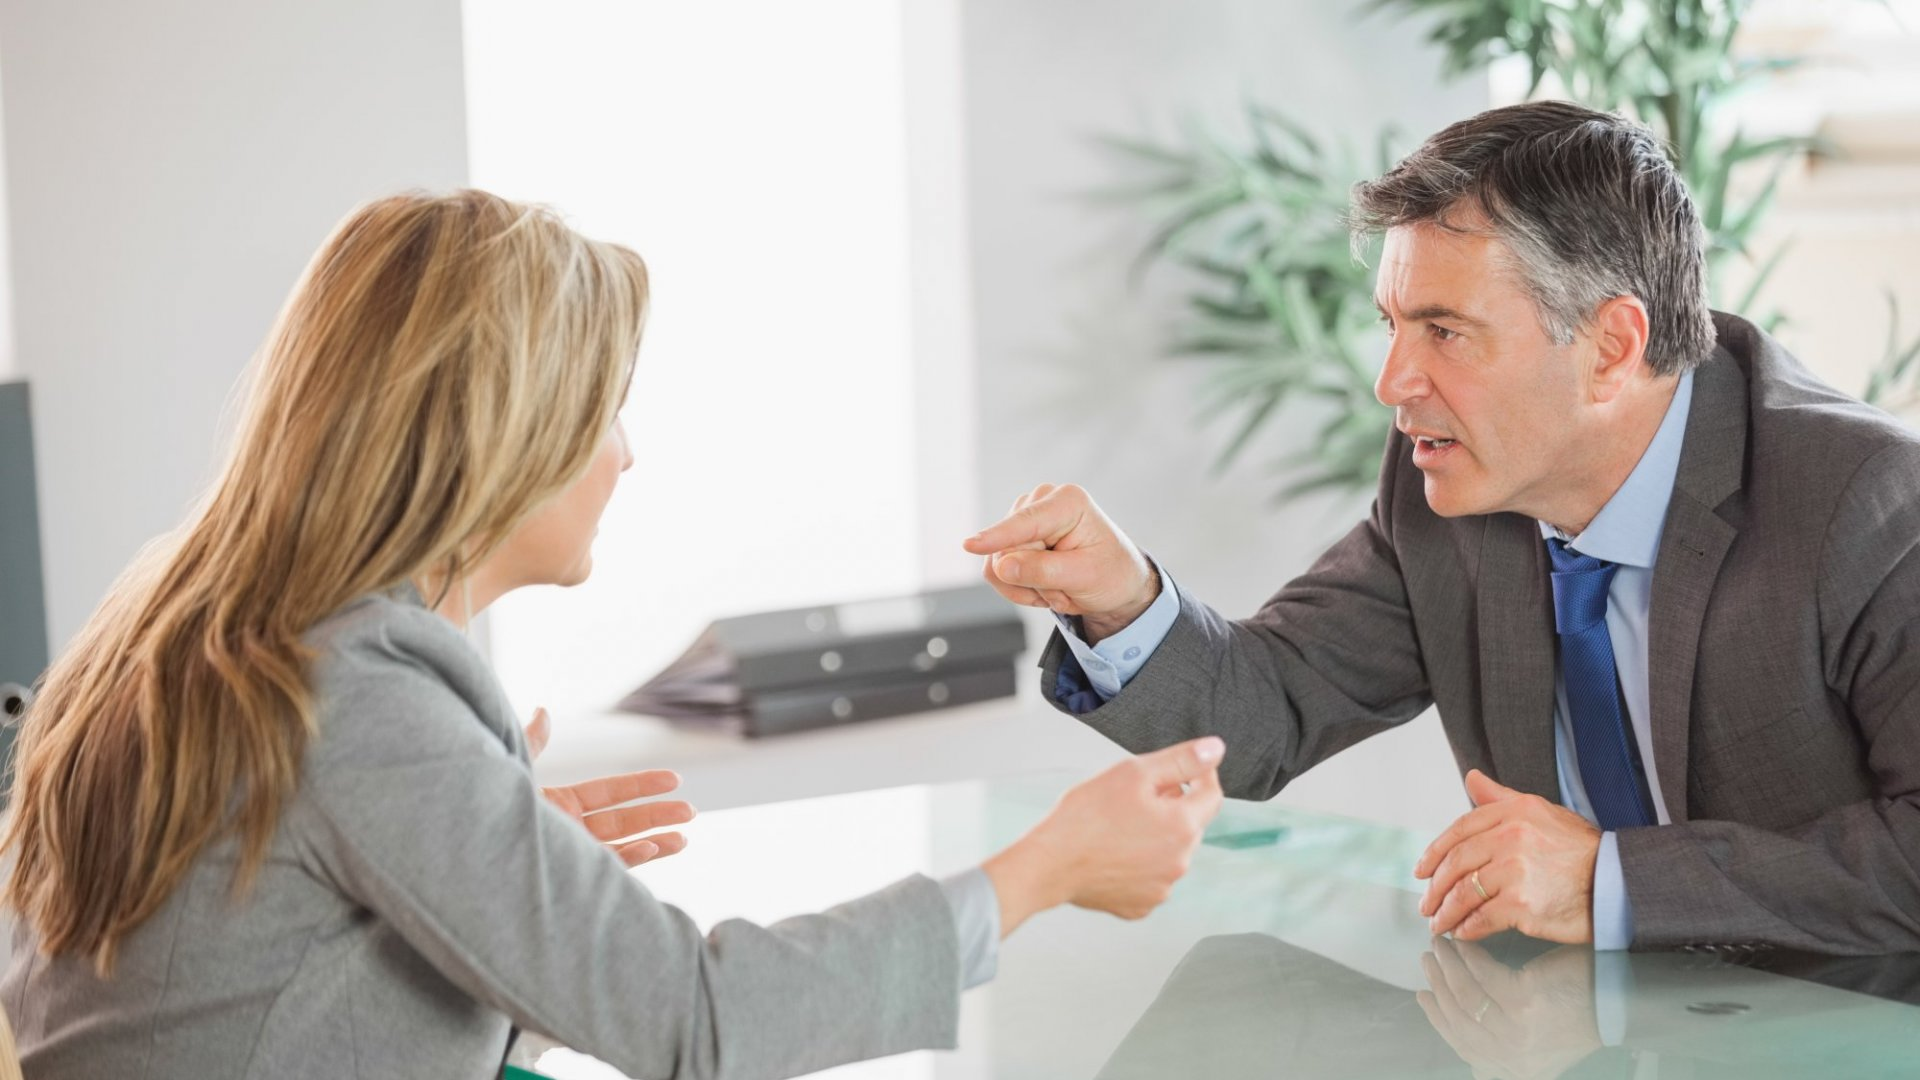 How to Deal With a Hostile Job Interviewer